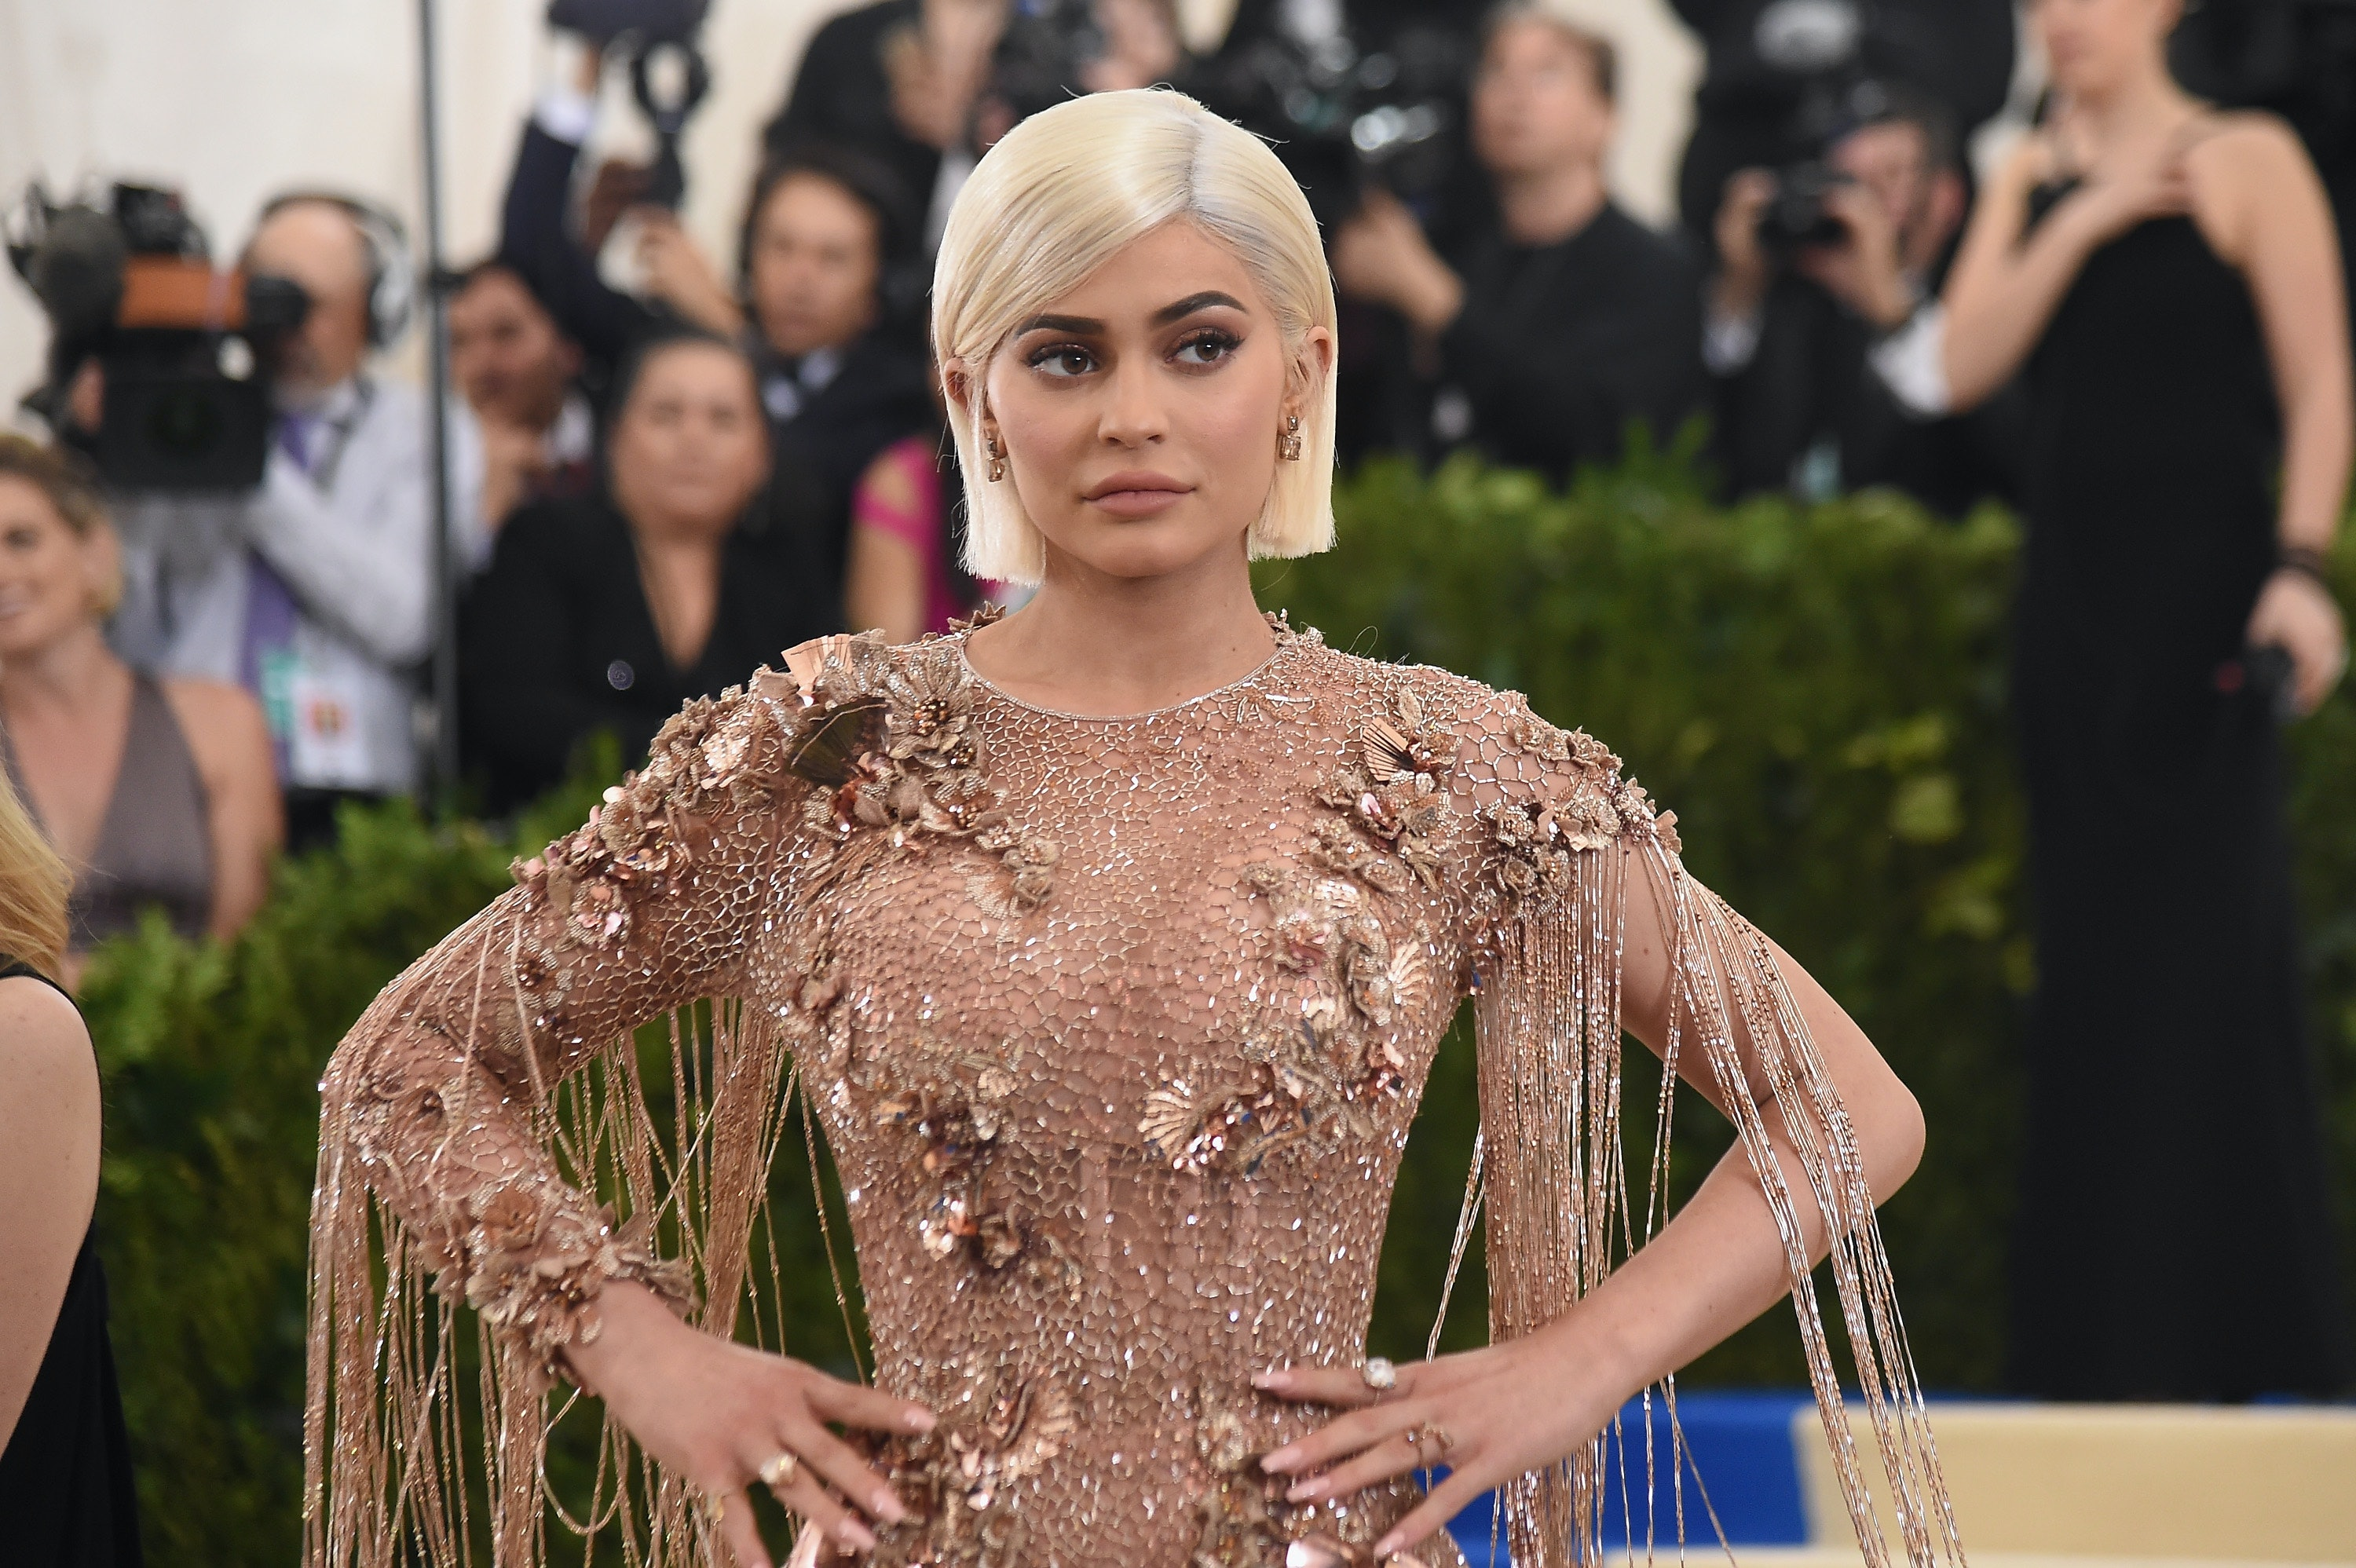 Kylie Jenner Reportedly Went on a $70000 Baby Shopping Spree